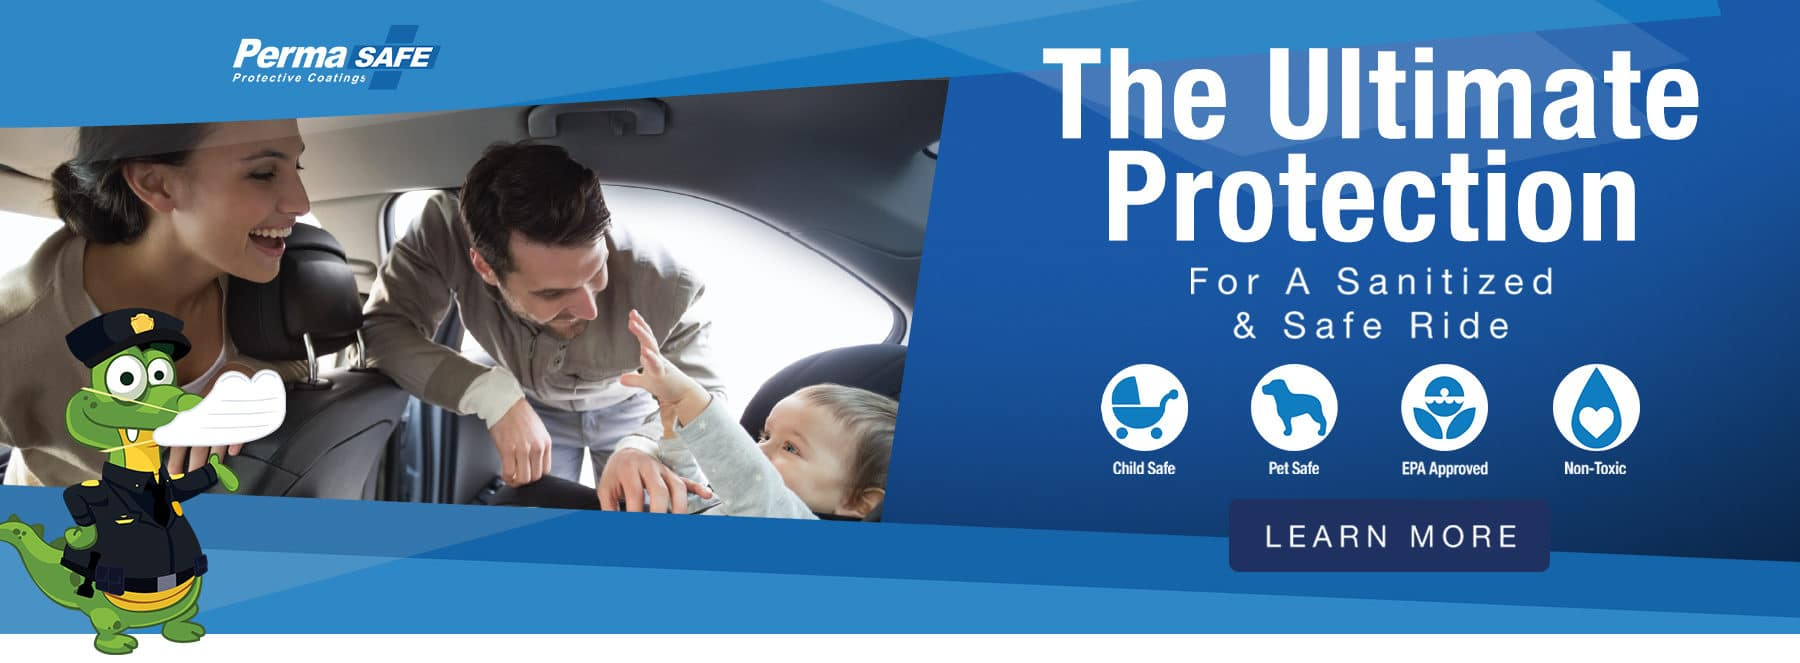 PermaSafe - The Ultimate Protection - For a Sanitized & Safe Ride